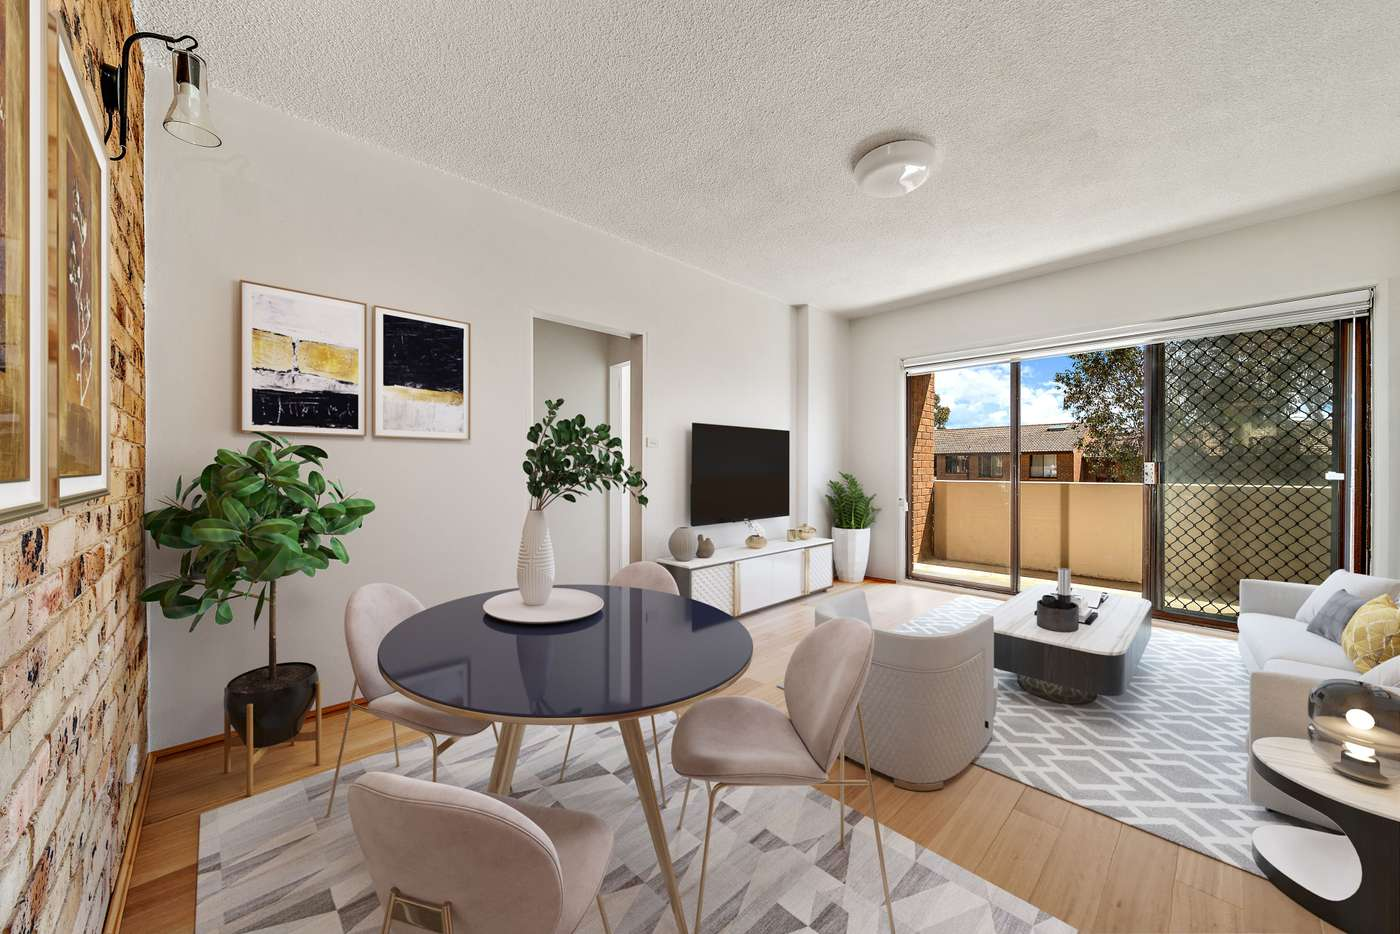 Main view of Homely apartment listing, 16/32 Springvale Drive, Hawker ACT 2614